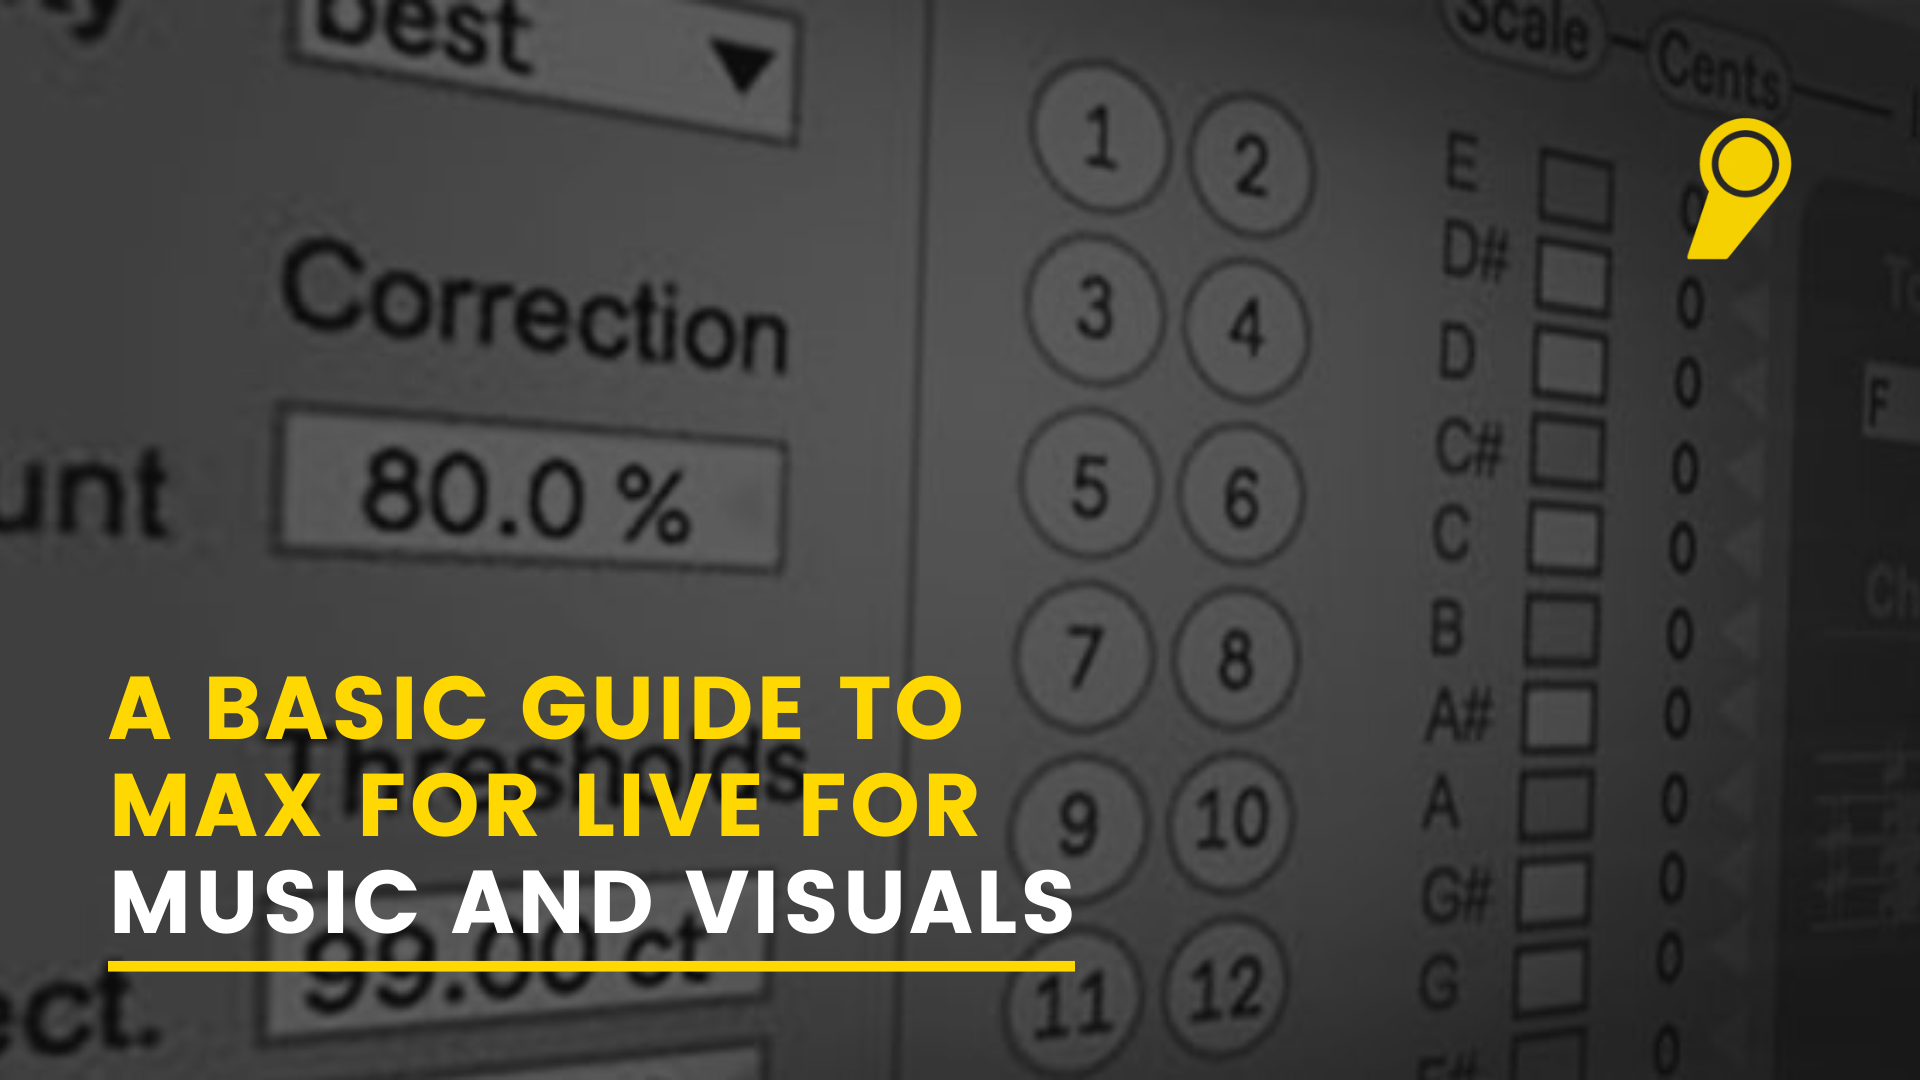 A Basic Guide to Max for Live for Music and Visuals